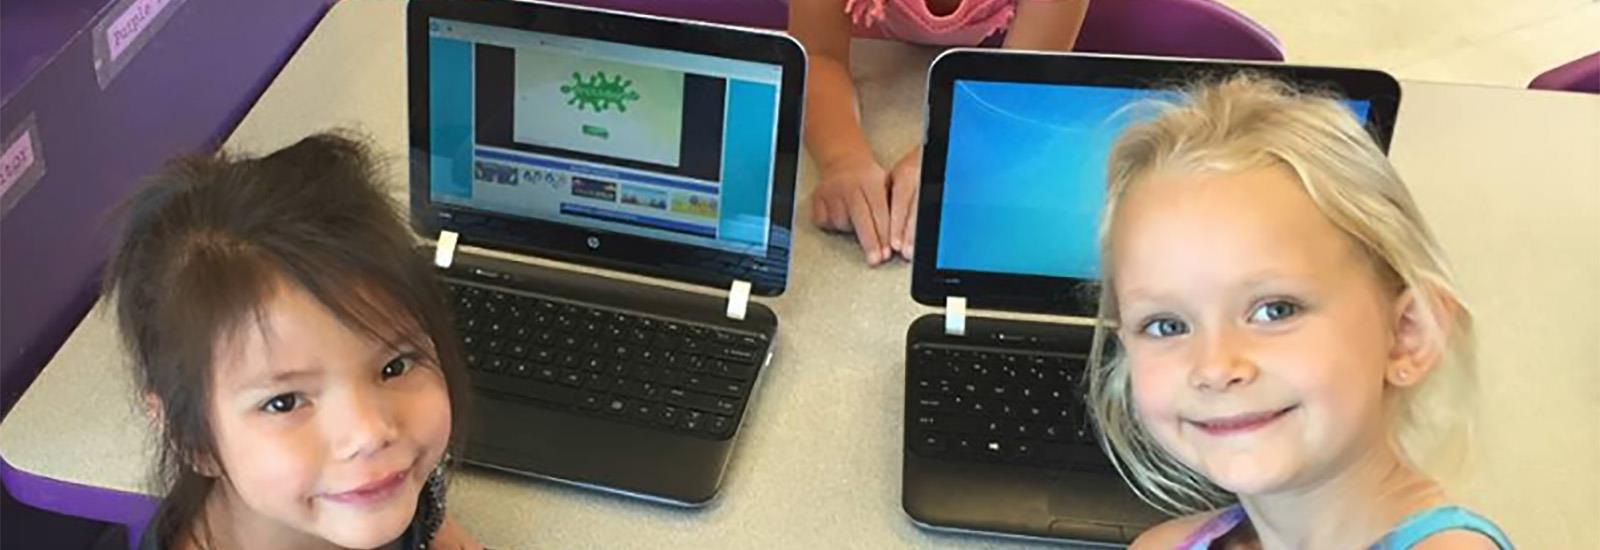 Hawks use a variety of digital tools to construct knowledge.